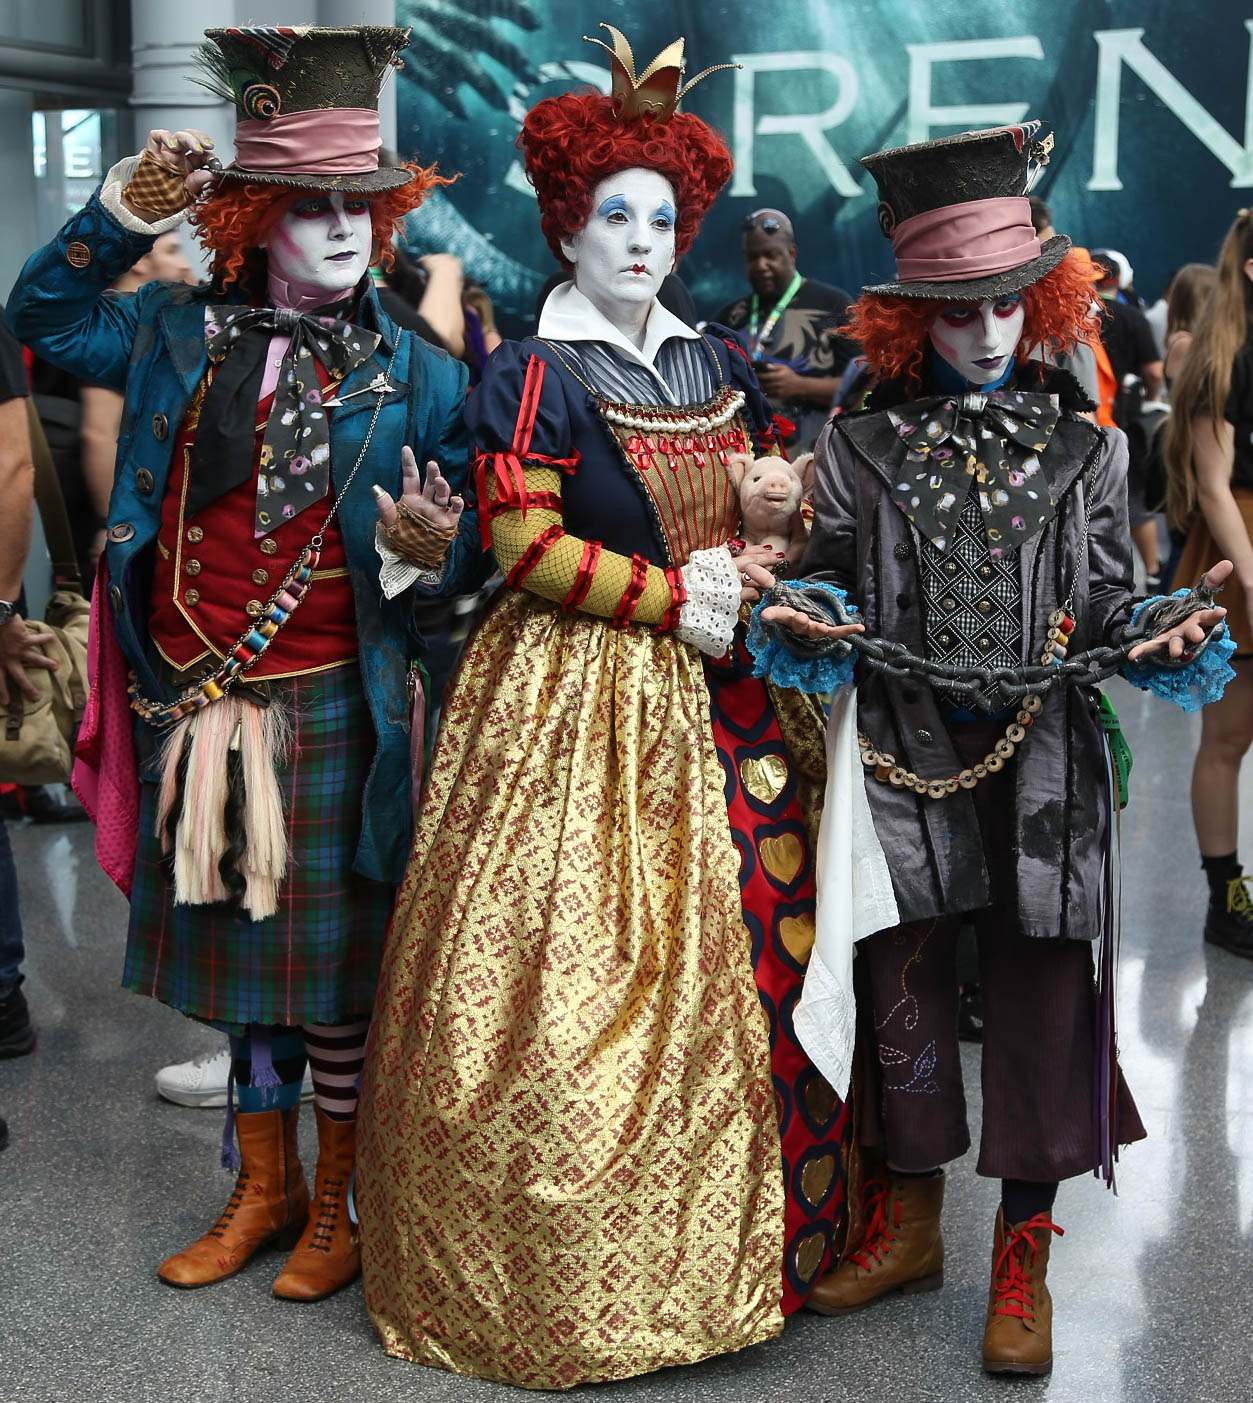 nycc12 Best Costumes from Comic Con in New York 2017